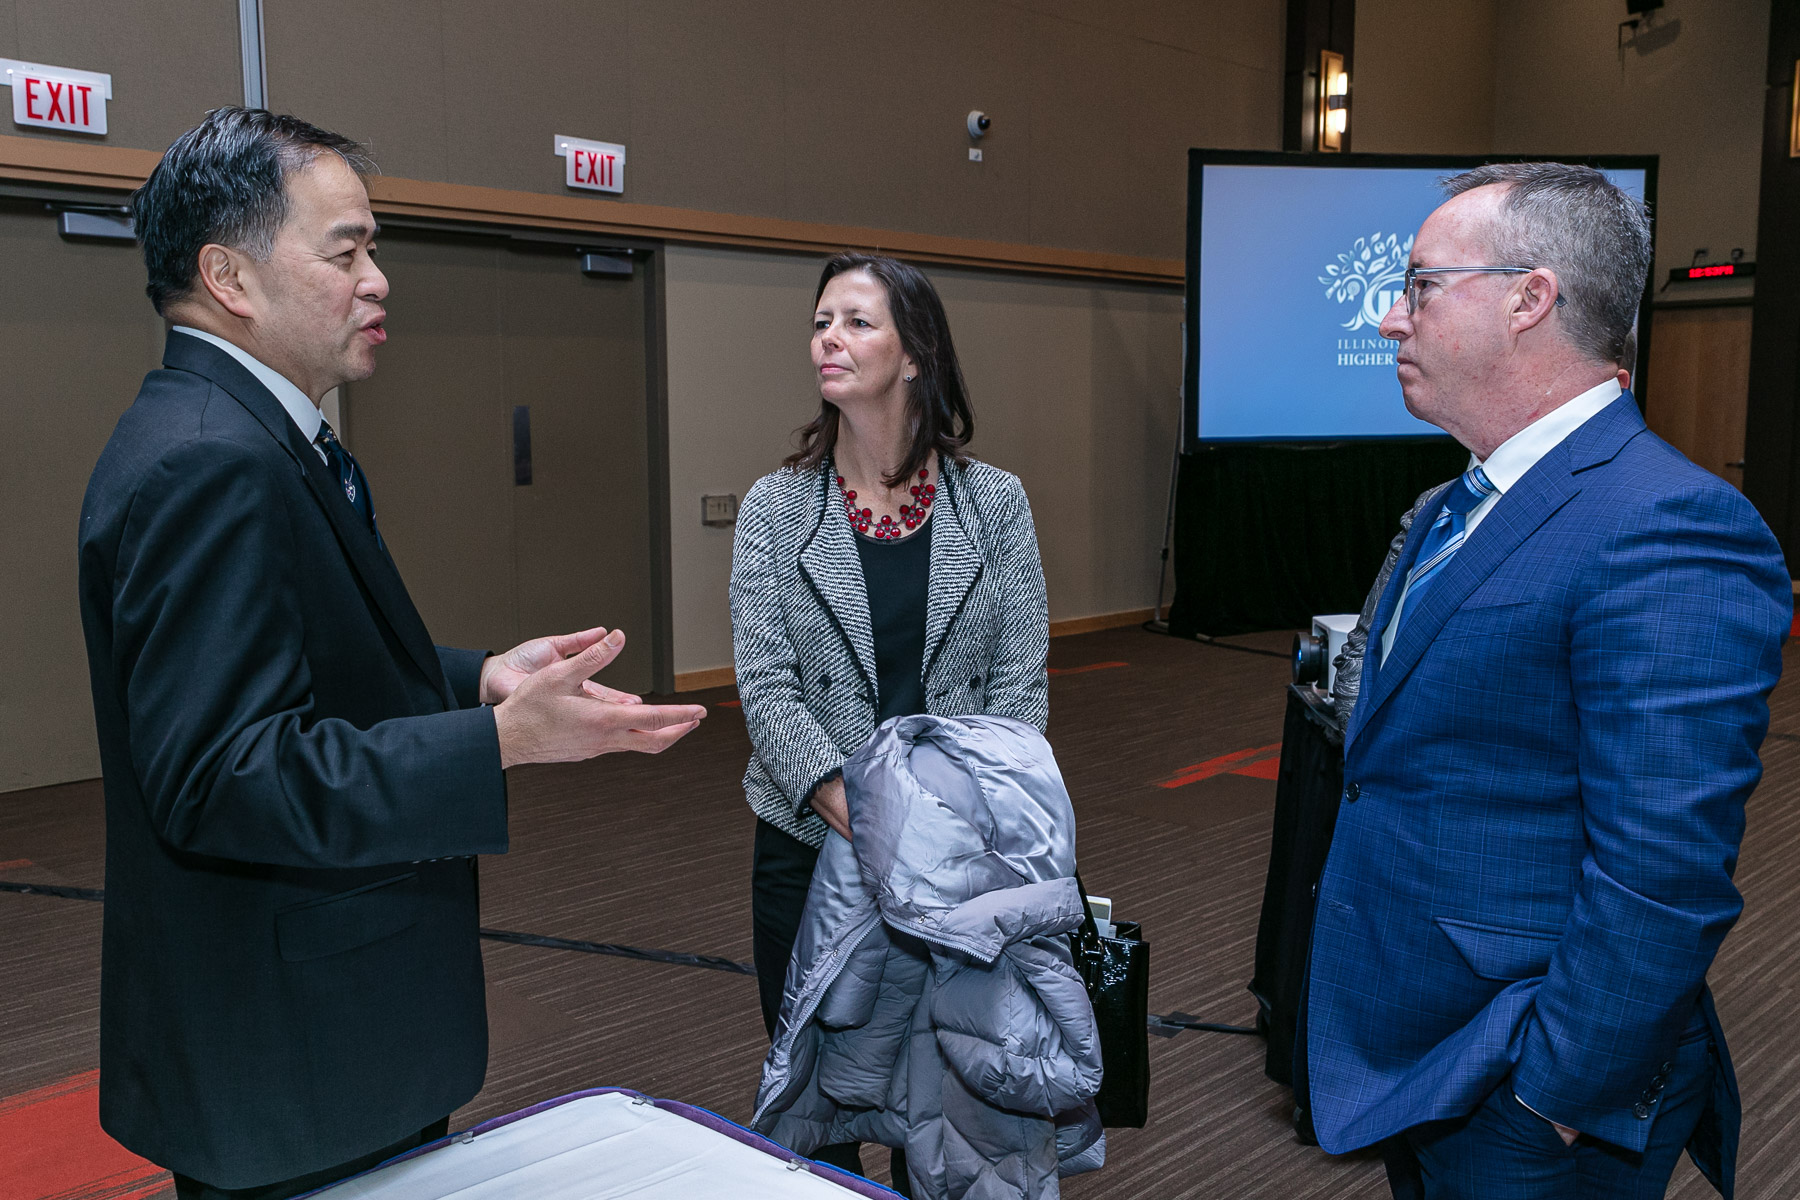 Left to right, A. Gabriel Esteban, Ph.D., president of DePaul; Illinois Rep. Kelly Burke (D); and John Atkinson, chair of Illinois Board of Higher Education; chat before the meeting begins. (DePaul University/Randall Spriggs)